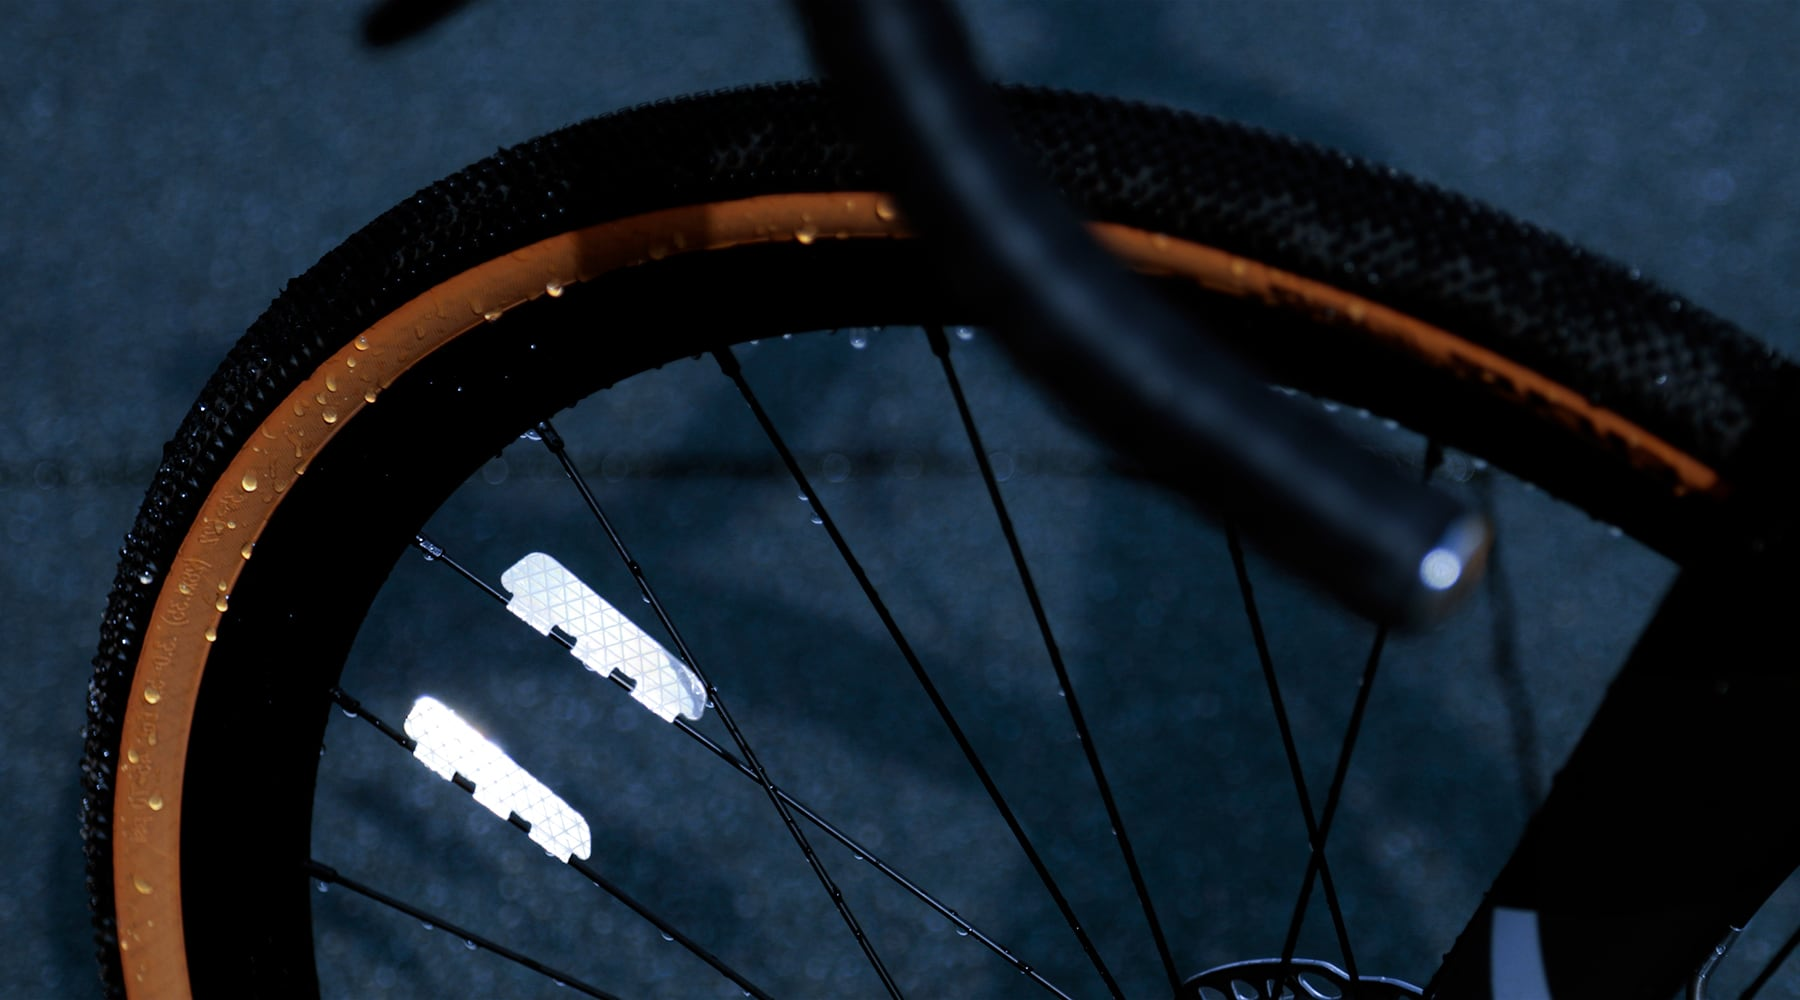 FLECTR ZERO - The performance spoke reflector fits your bike